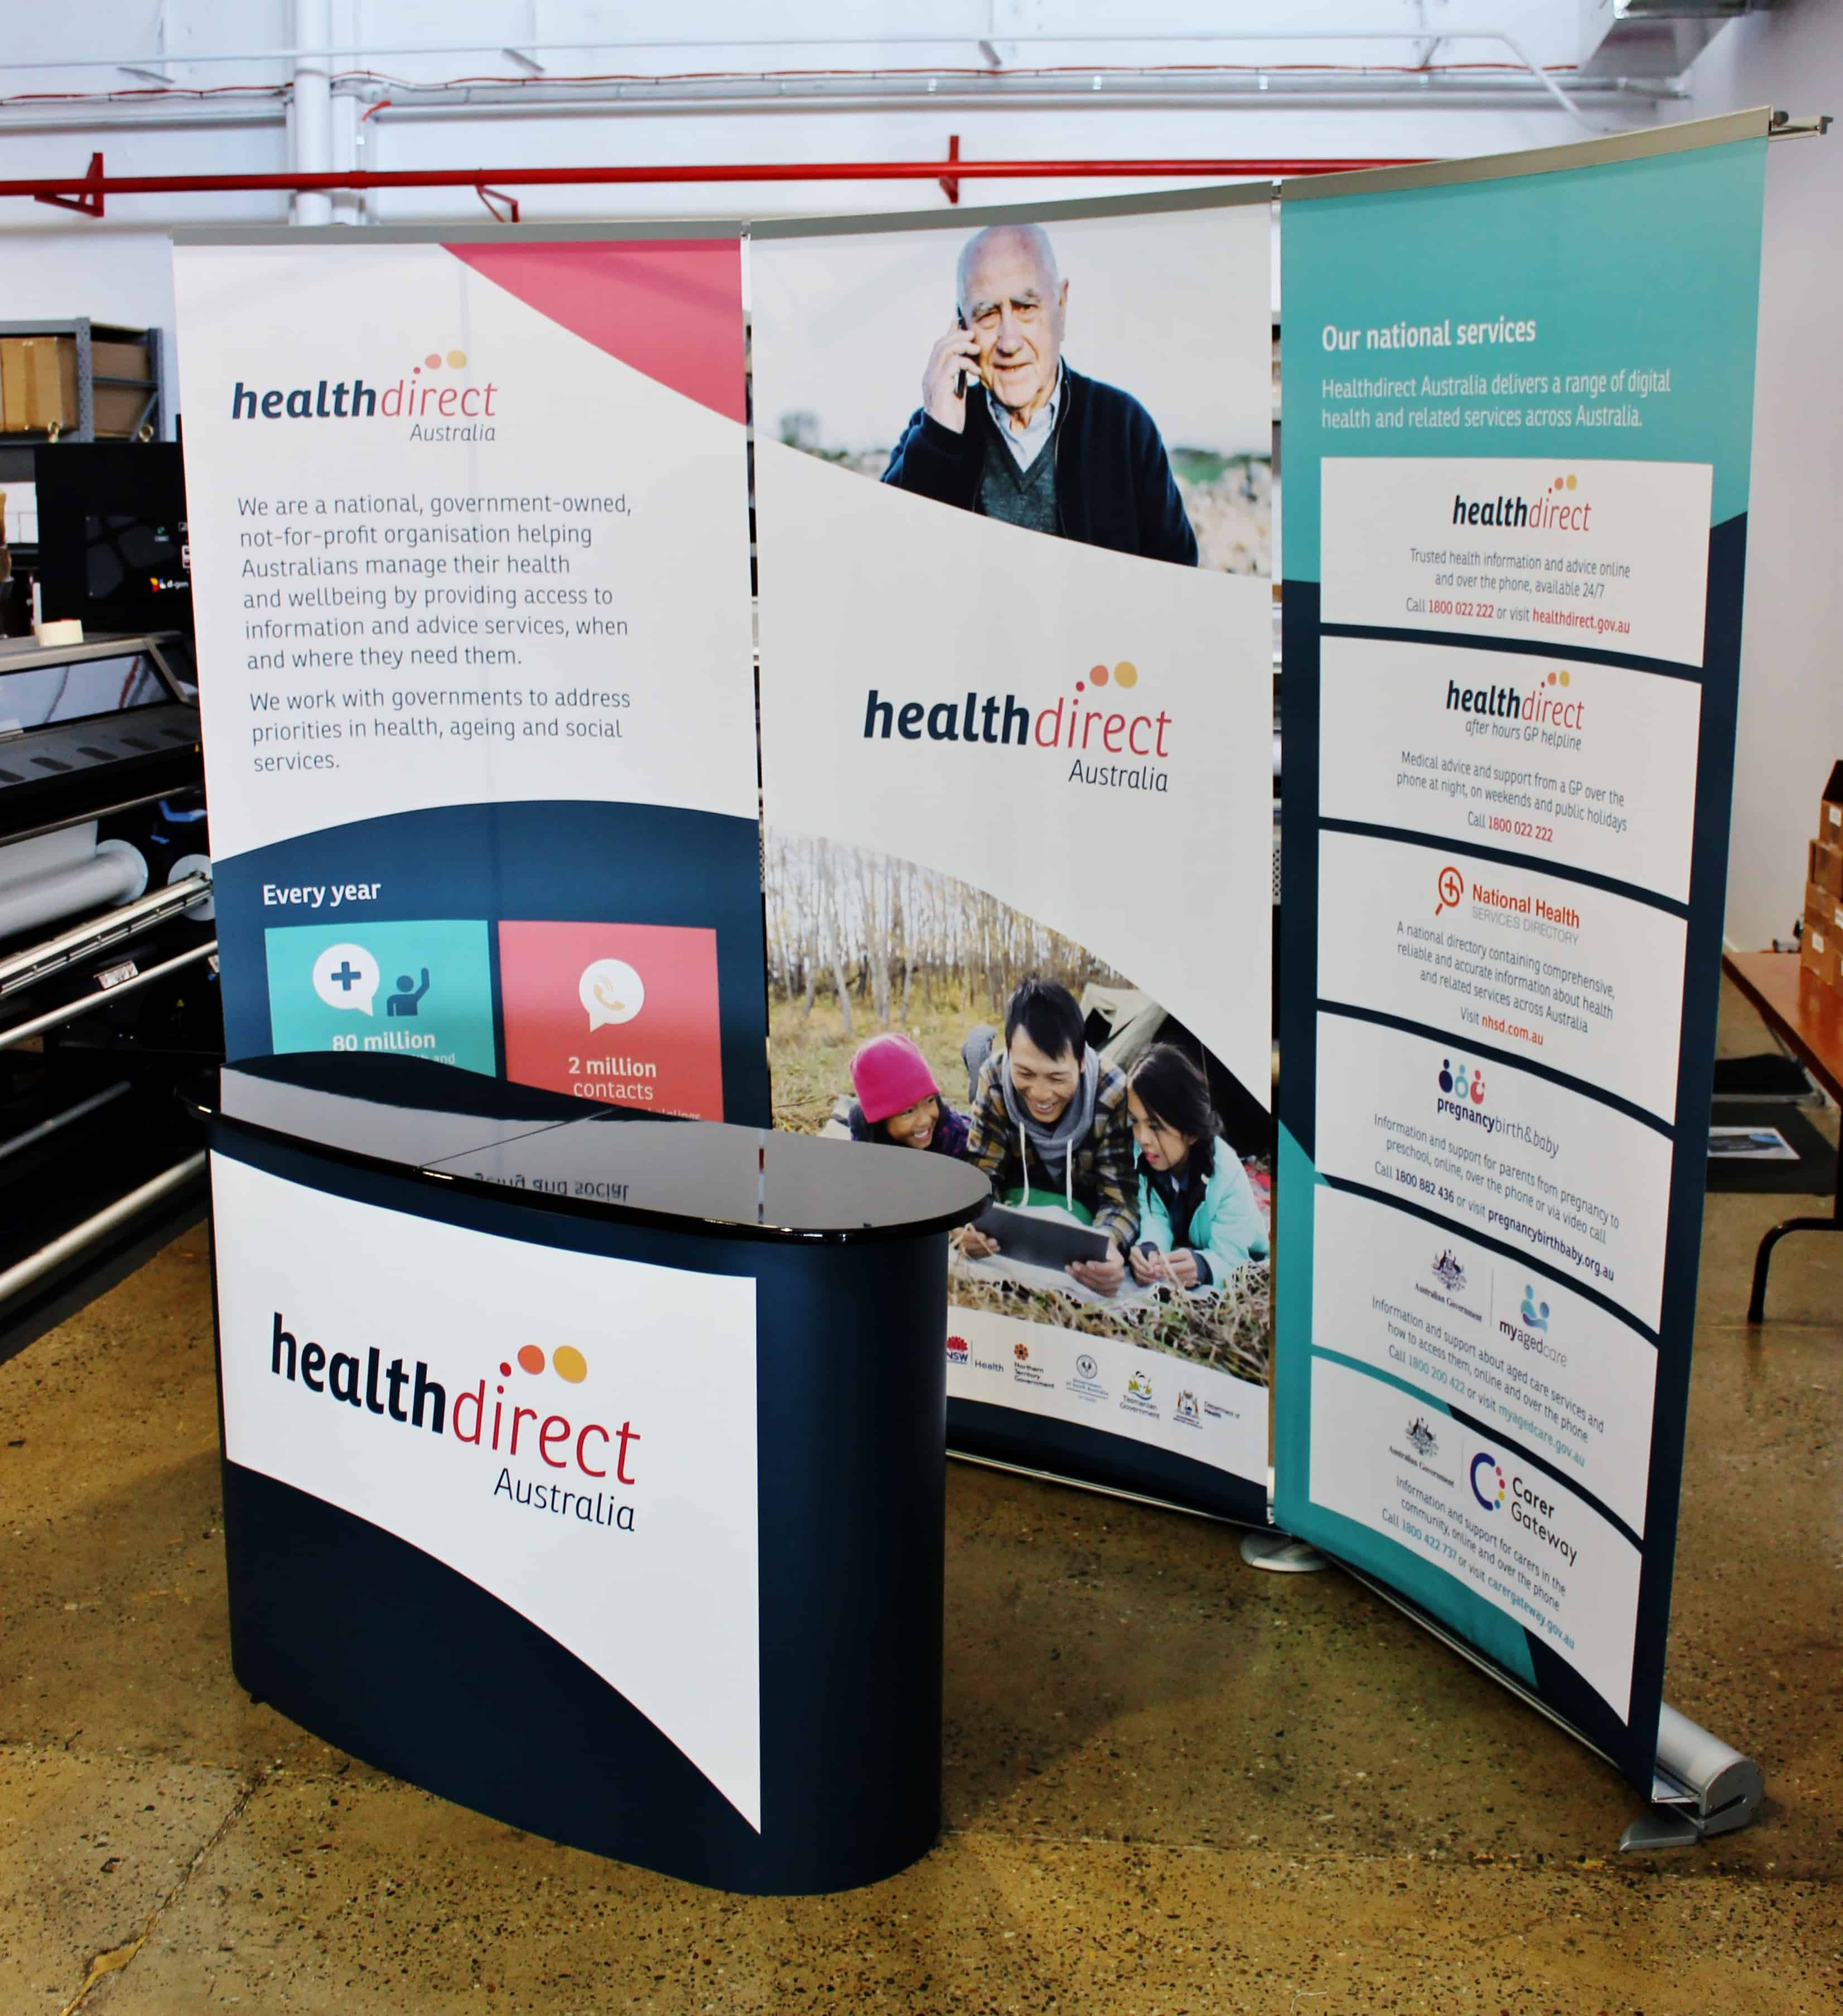 16.0206_Healthdirect Australia_Triple Exalt_Expo Table (3)